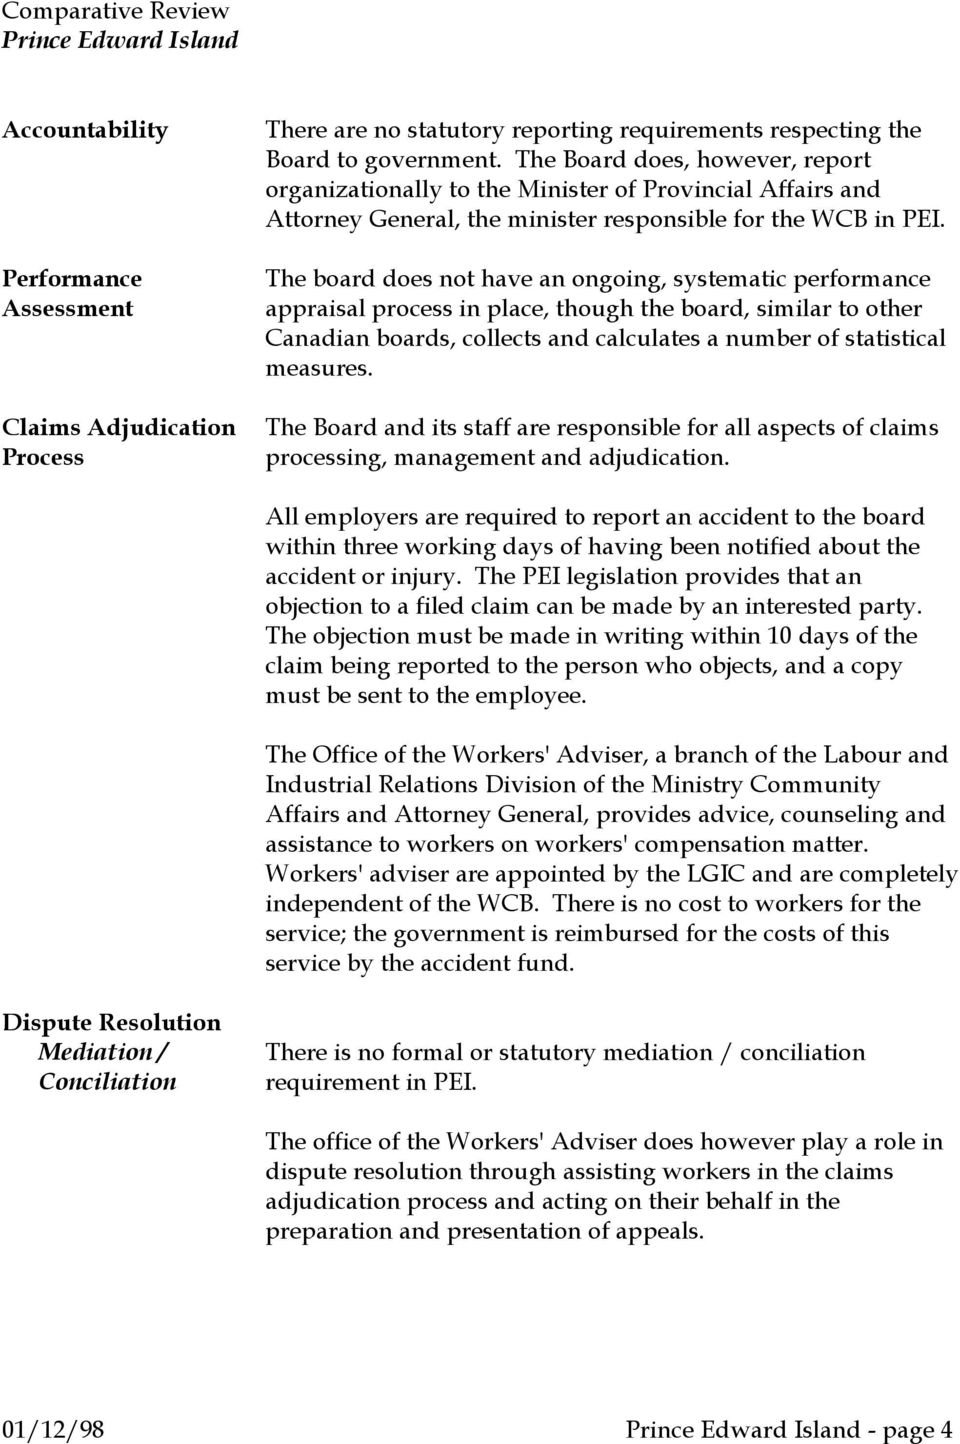 The board does not have an ongoing, systematic performance appraisal process in place, though the board, similar to other Canadian boards, collects and calculates a number of statistical measures.